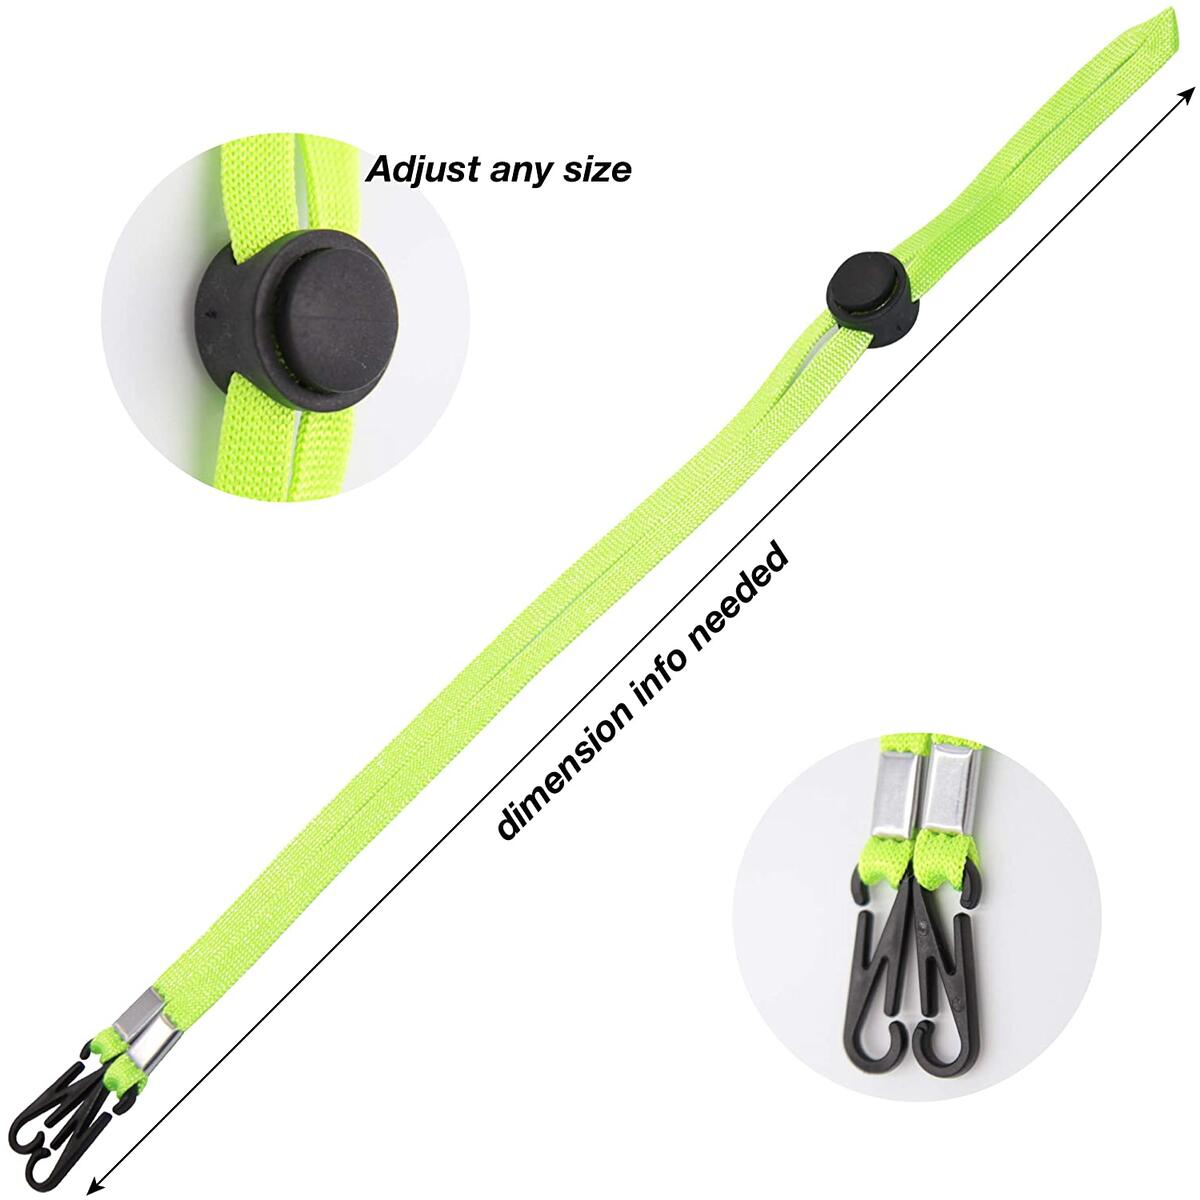 10 Pieces Unisex Adjustable Mask Lanyard for Kids, Men & Women. Mask Strap (Mask Chain, Mask Extender, Mask Clips) Keeps Clean, Your Mask. Breakaway Lanyard, 10 Pack Has Different Colors. Shield.